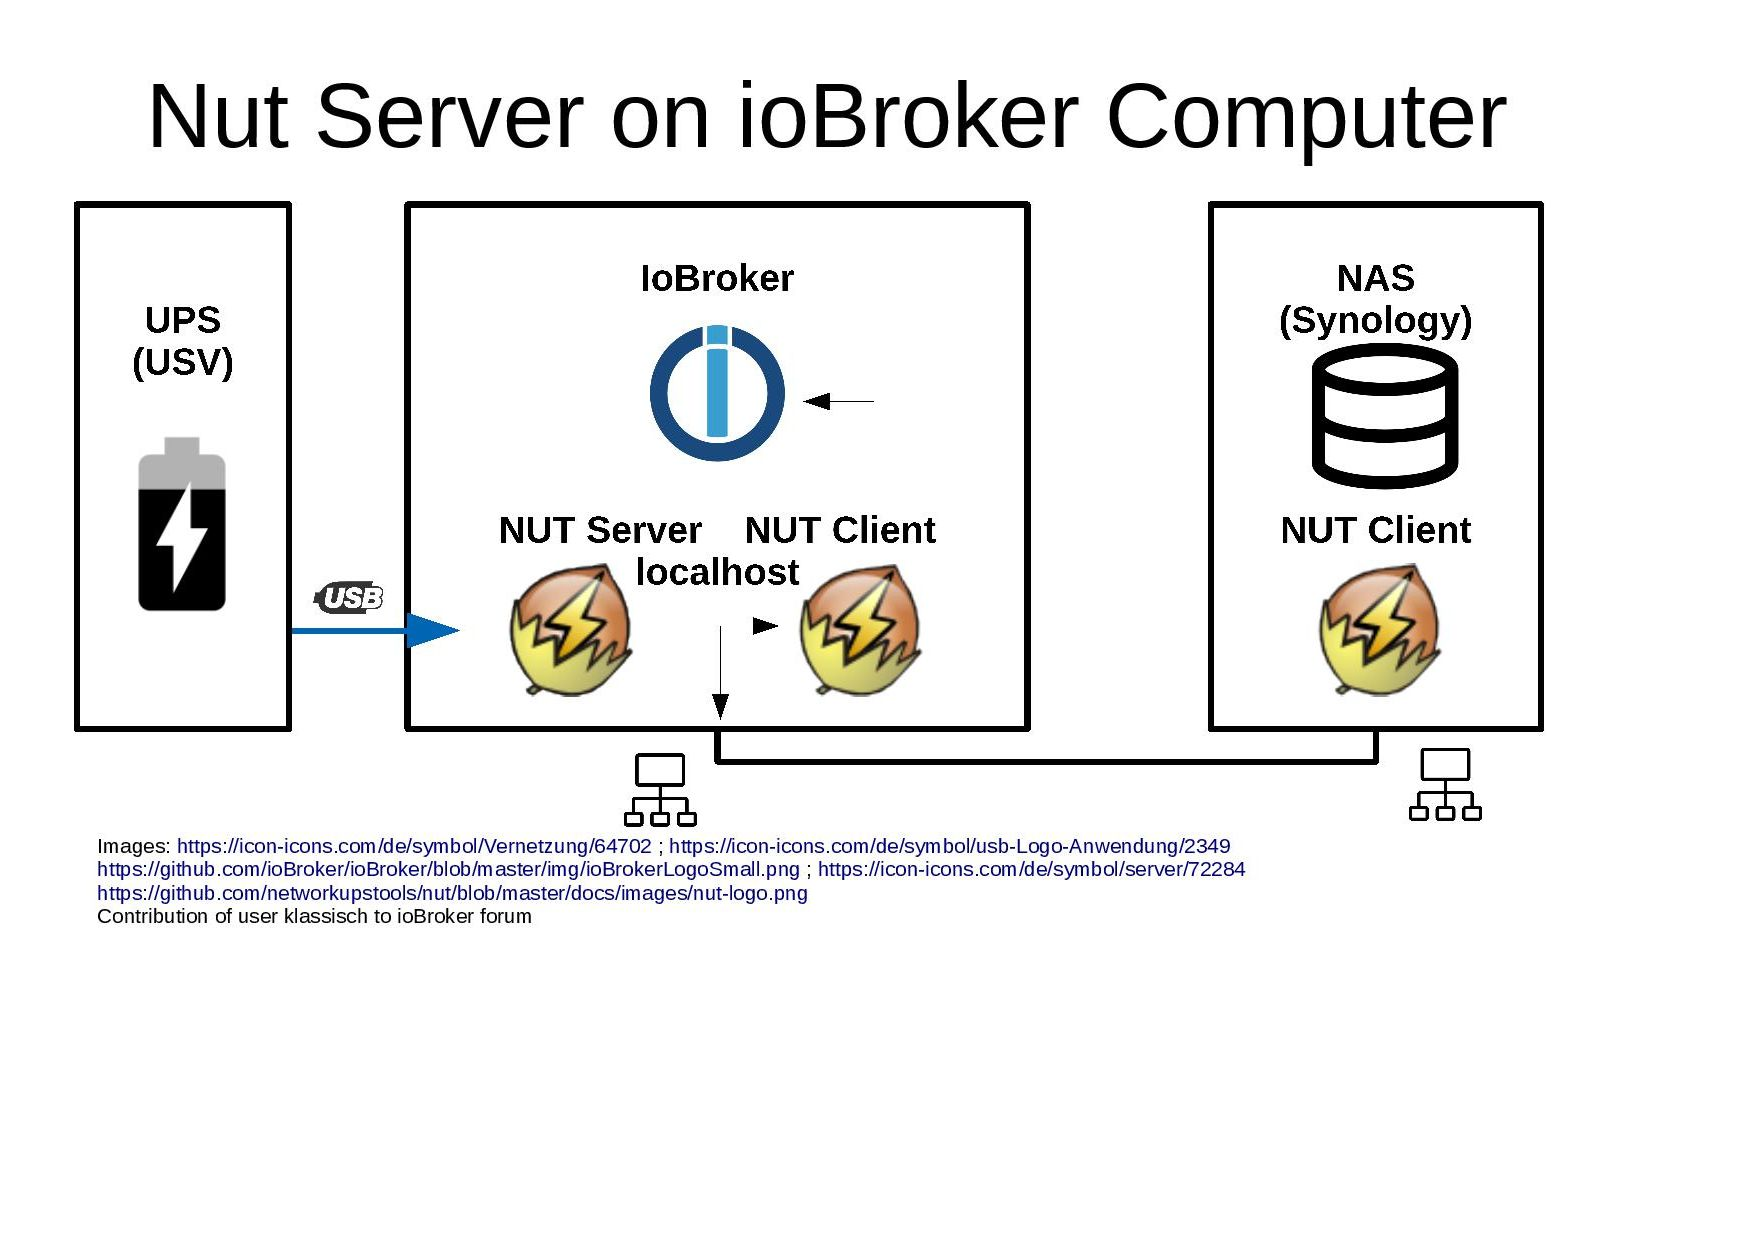 Nut-on-ioBroker-Computer.jpg